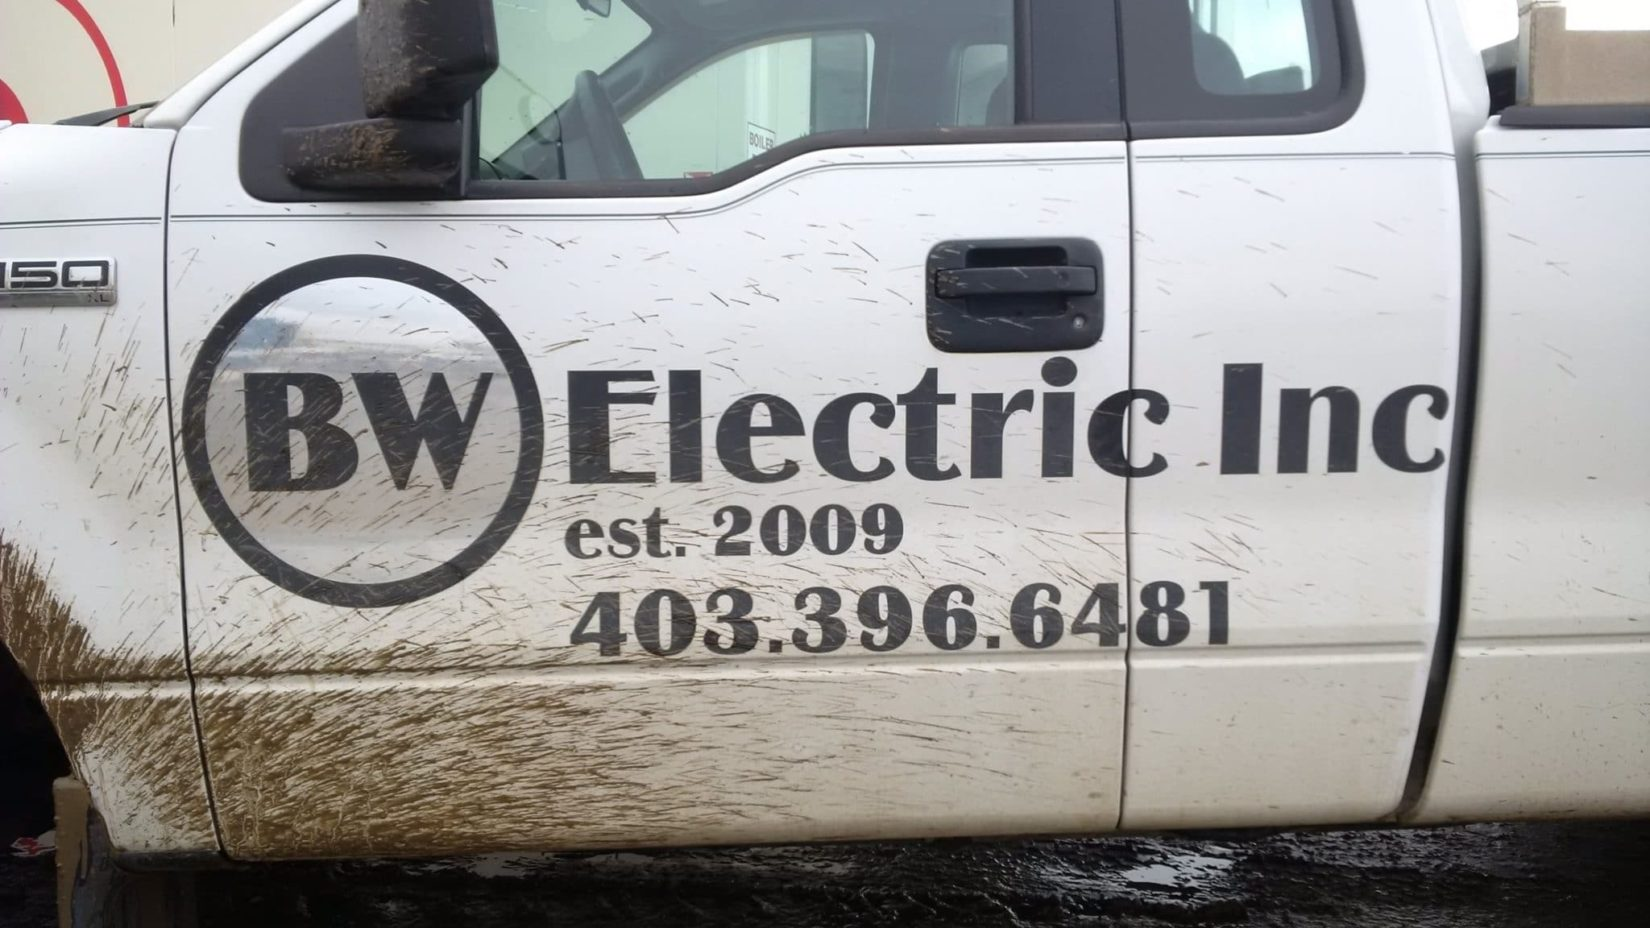 Company vehicle for BW Electric Inc.